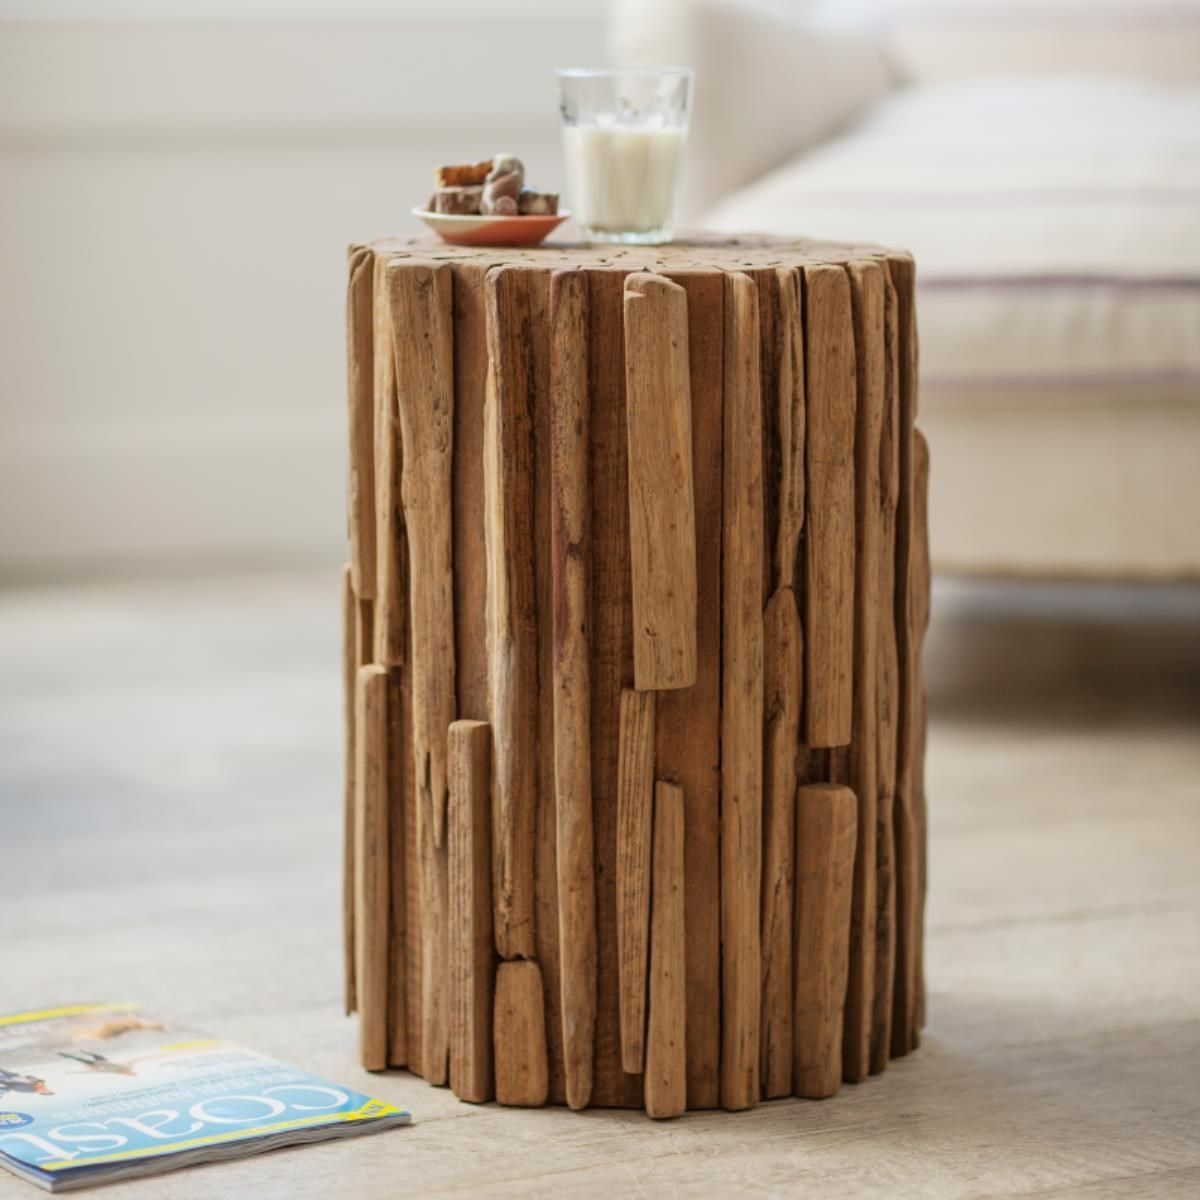 Wonderful Unique Side Table Hand Crafted From Teak Driftwood. Use Also As A Quirky  Lamp Or